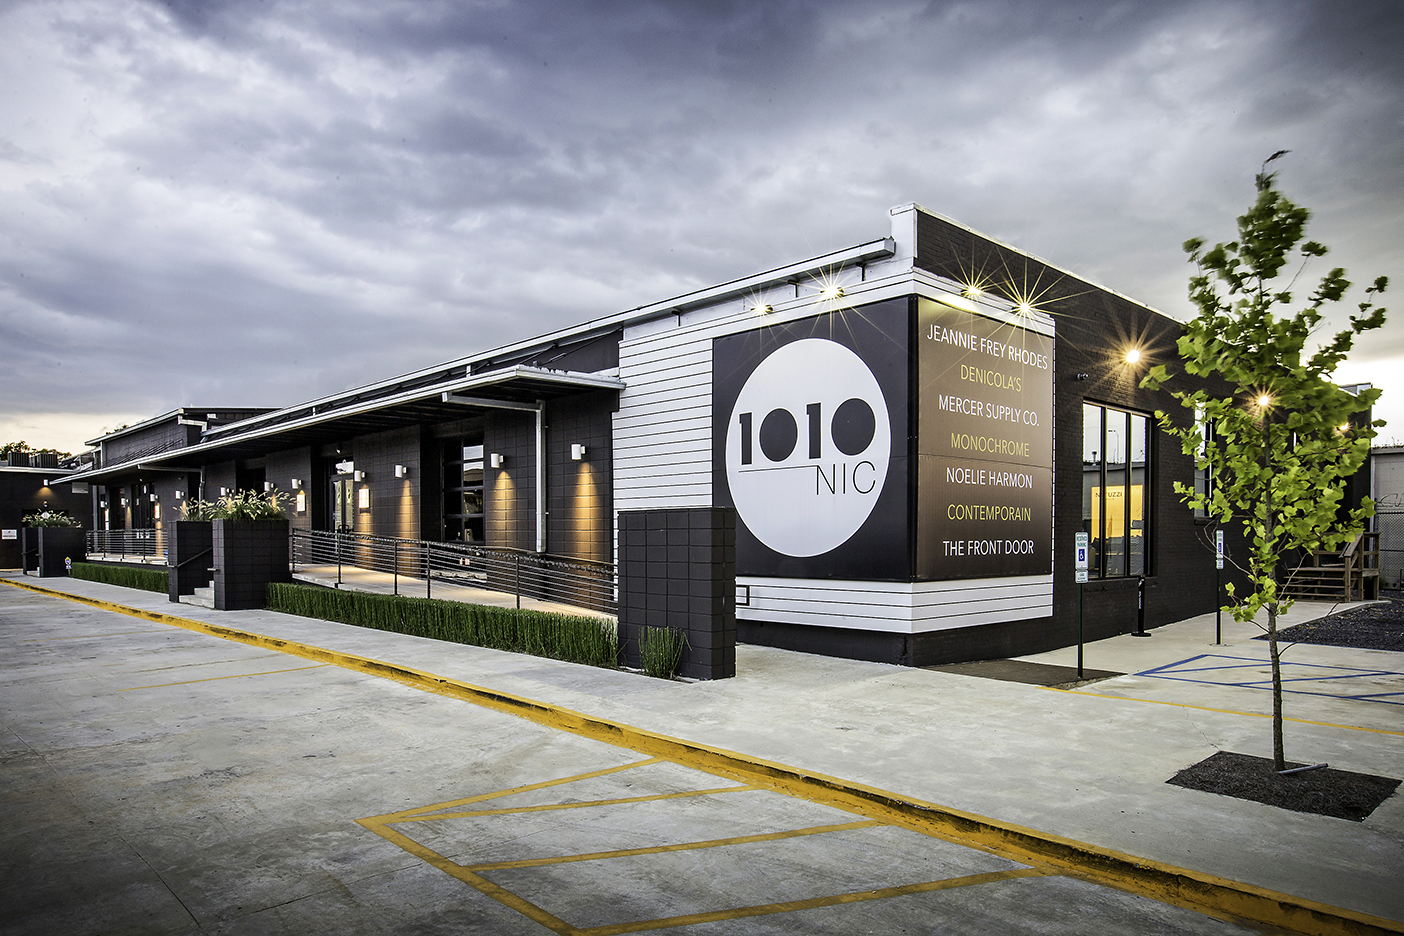 Take a look inside the creative-driven 1010 Nic warehouse on ...